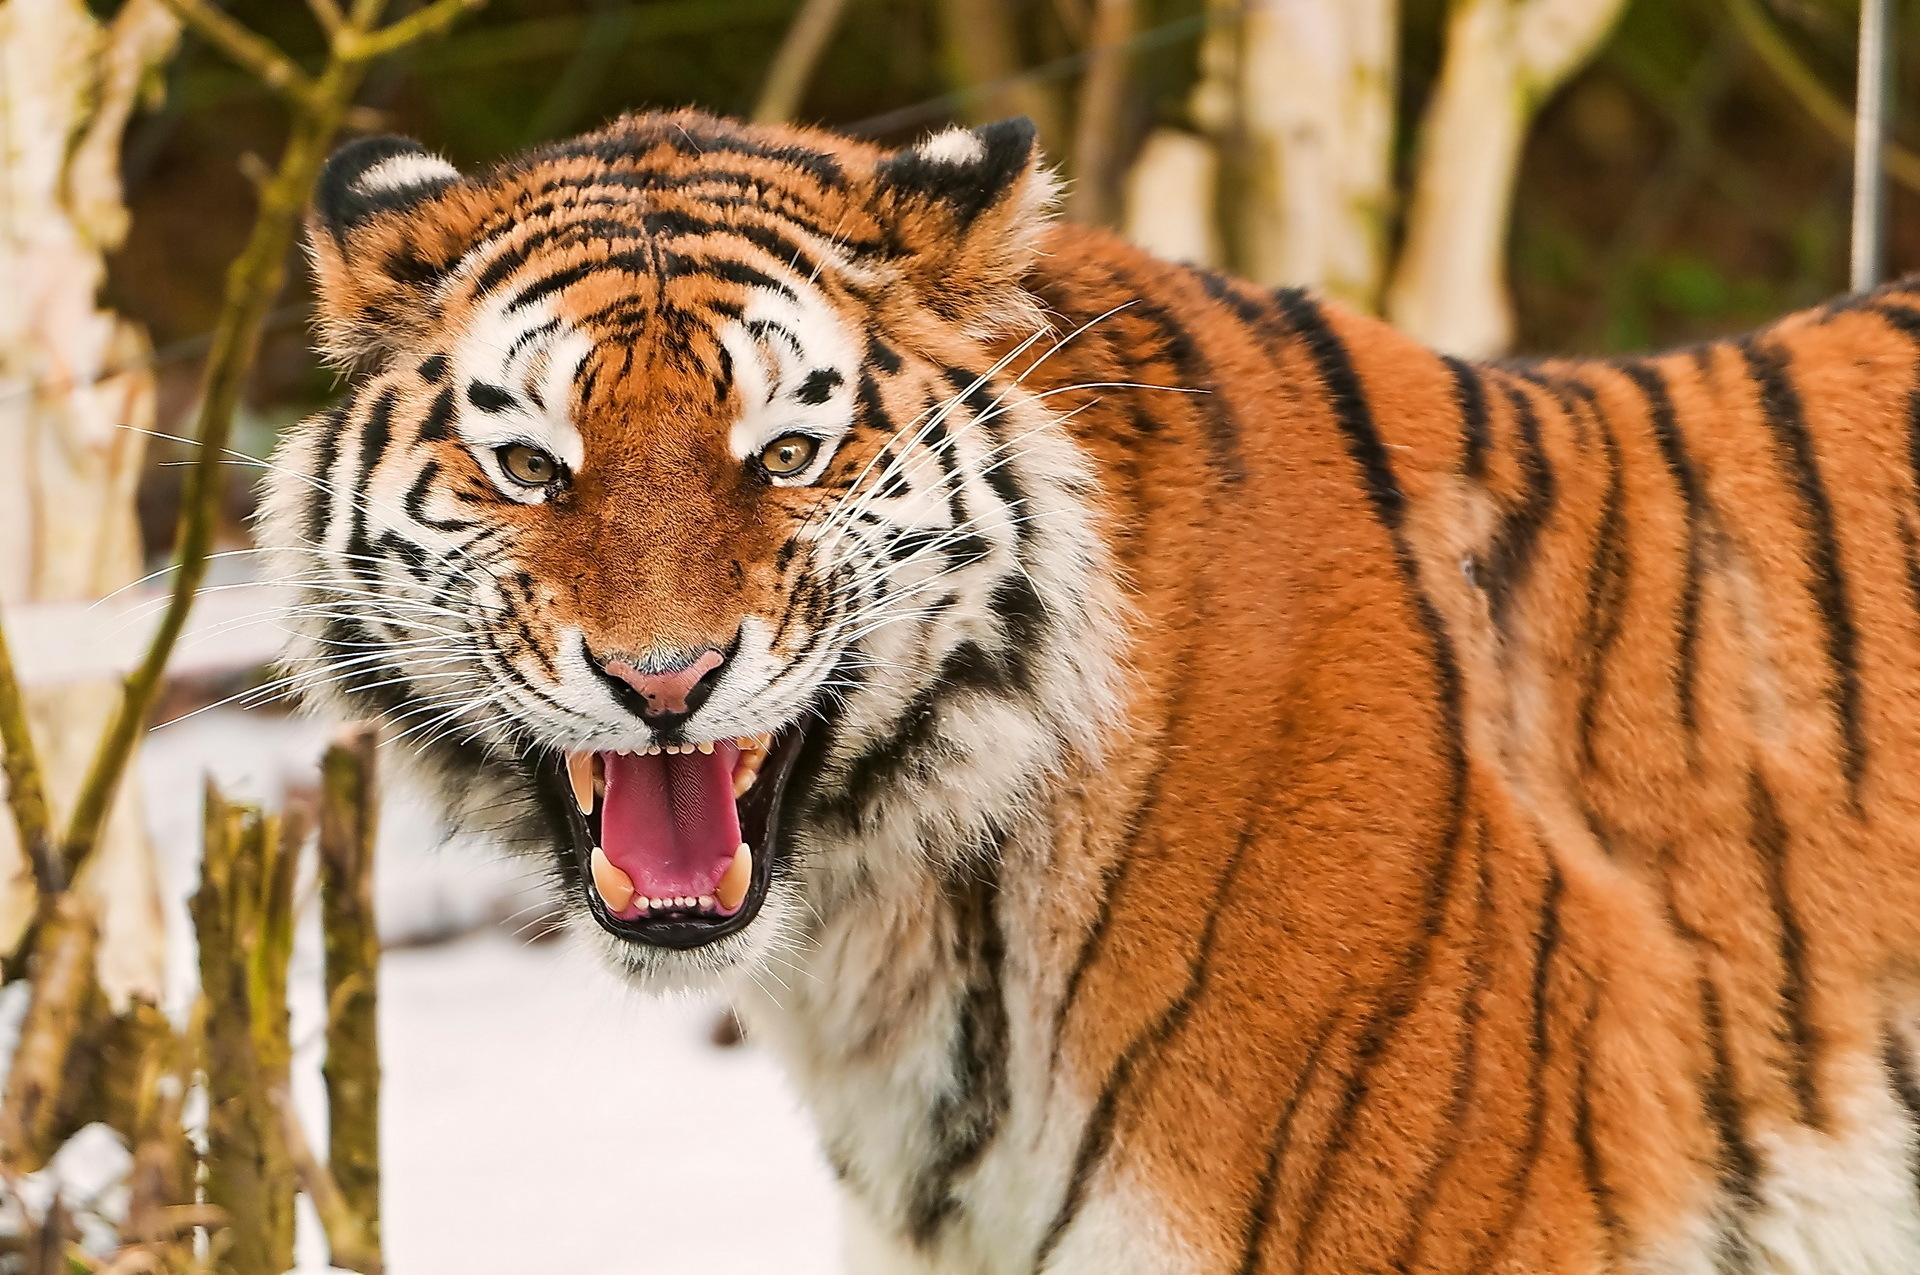 106255 download wallpaper Animals, Tiger, Muzzle, Striped, Predator, Big Cat screensavers and pictures for free